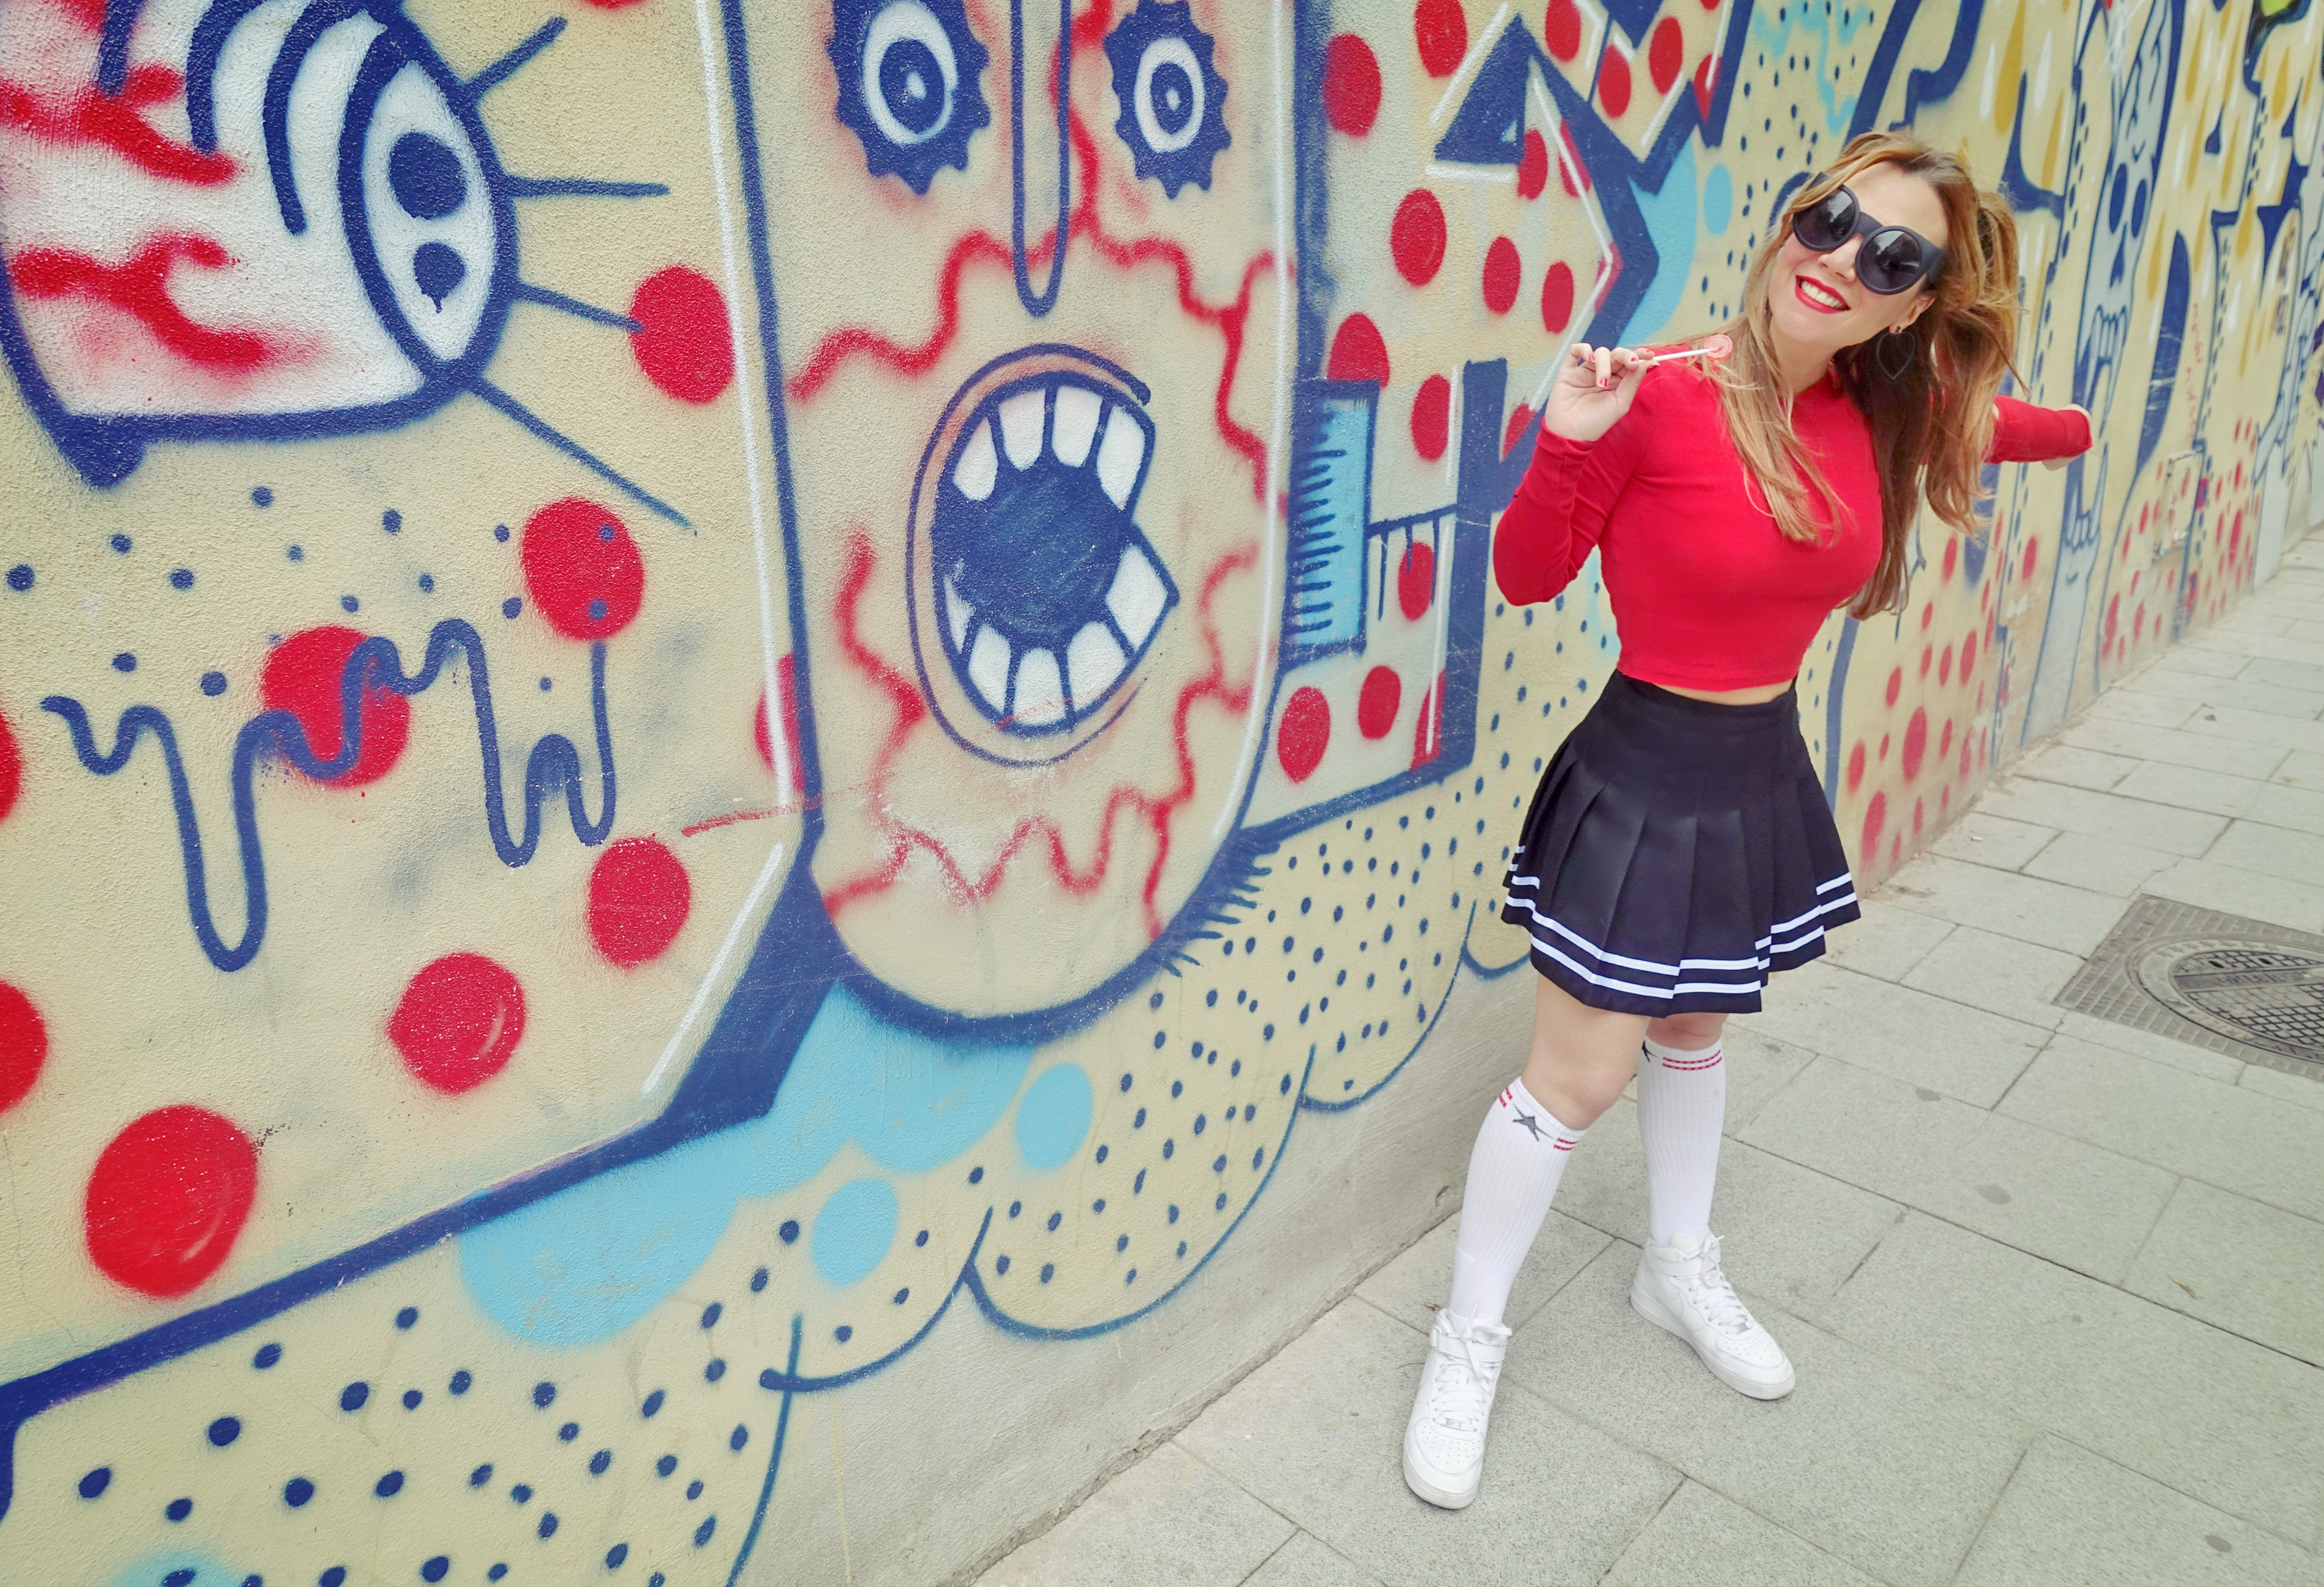 Calcetines-altos-blog-de-moda-ChicAdicta-influencer-hm-falda-cheerleader-PiensaenChic-Chic-Adicta-nike-air-force-Madrid-street-style-Piensa-en-Chic